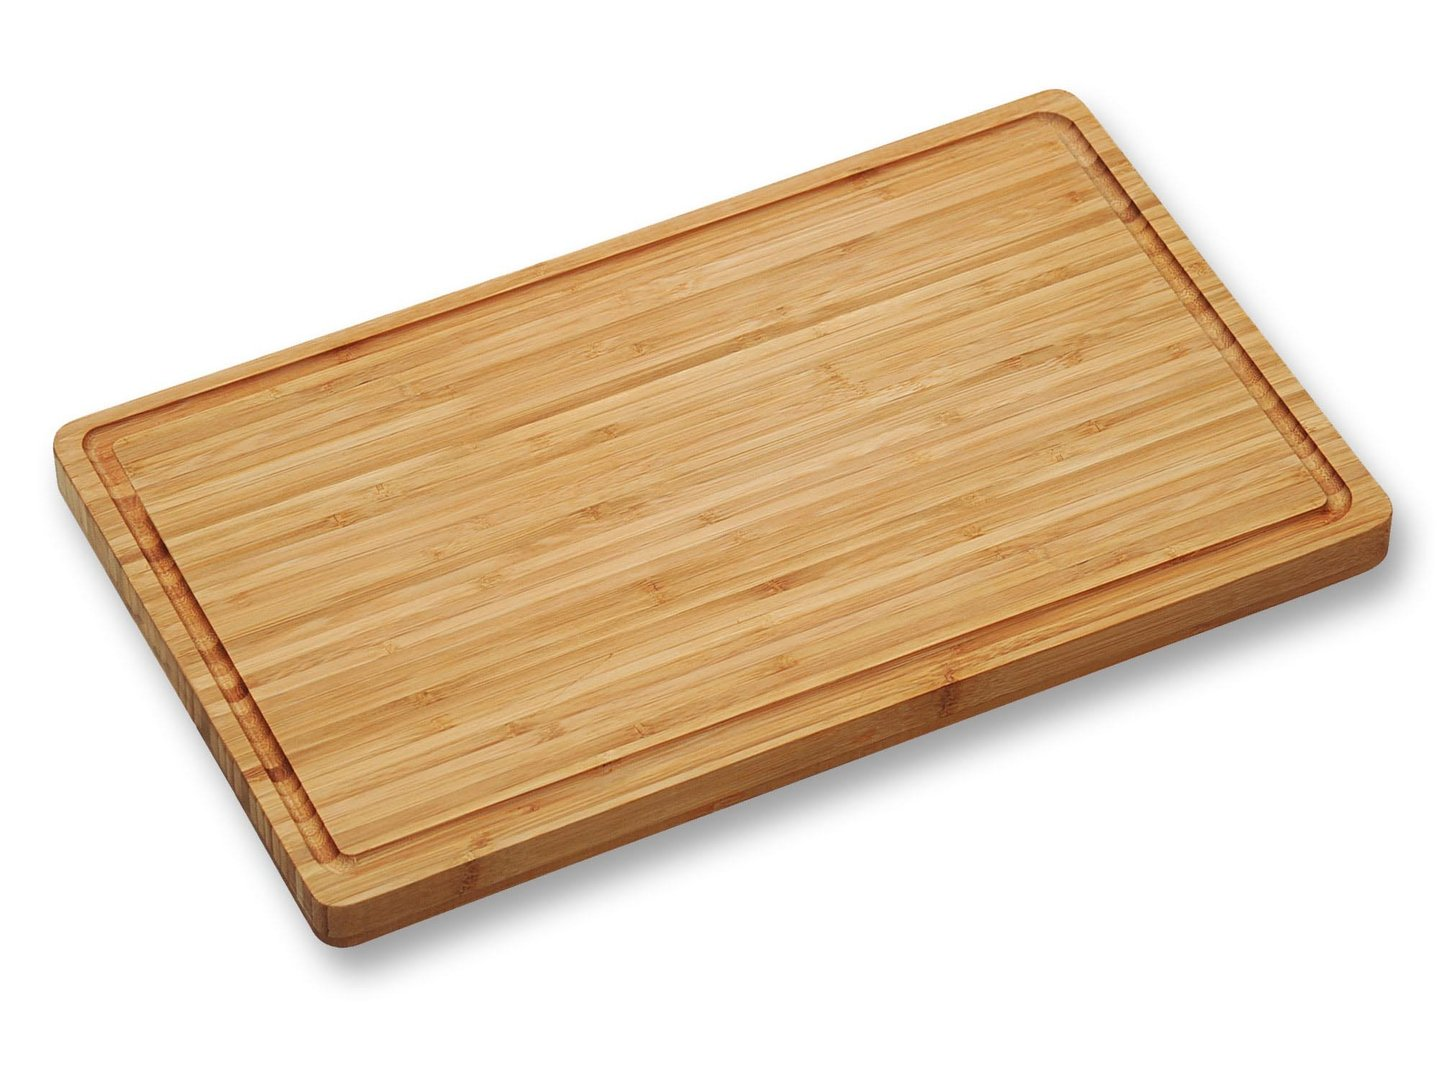 KESPER bamboo cutting board 45 x 26.5 x 3 cm with juice rim and slip-resistant feet